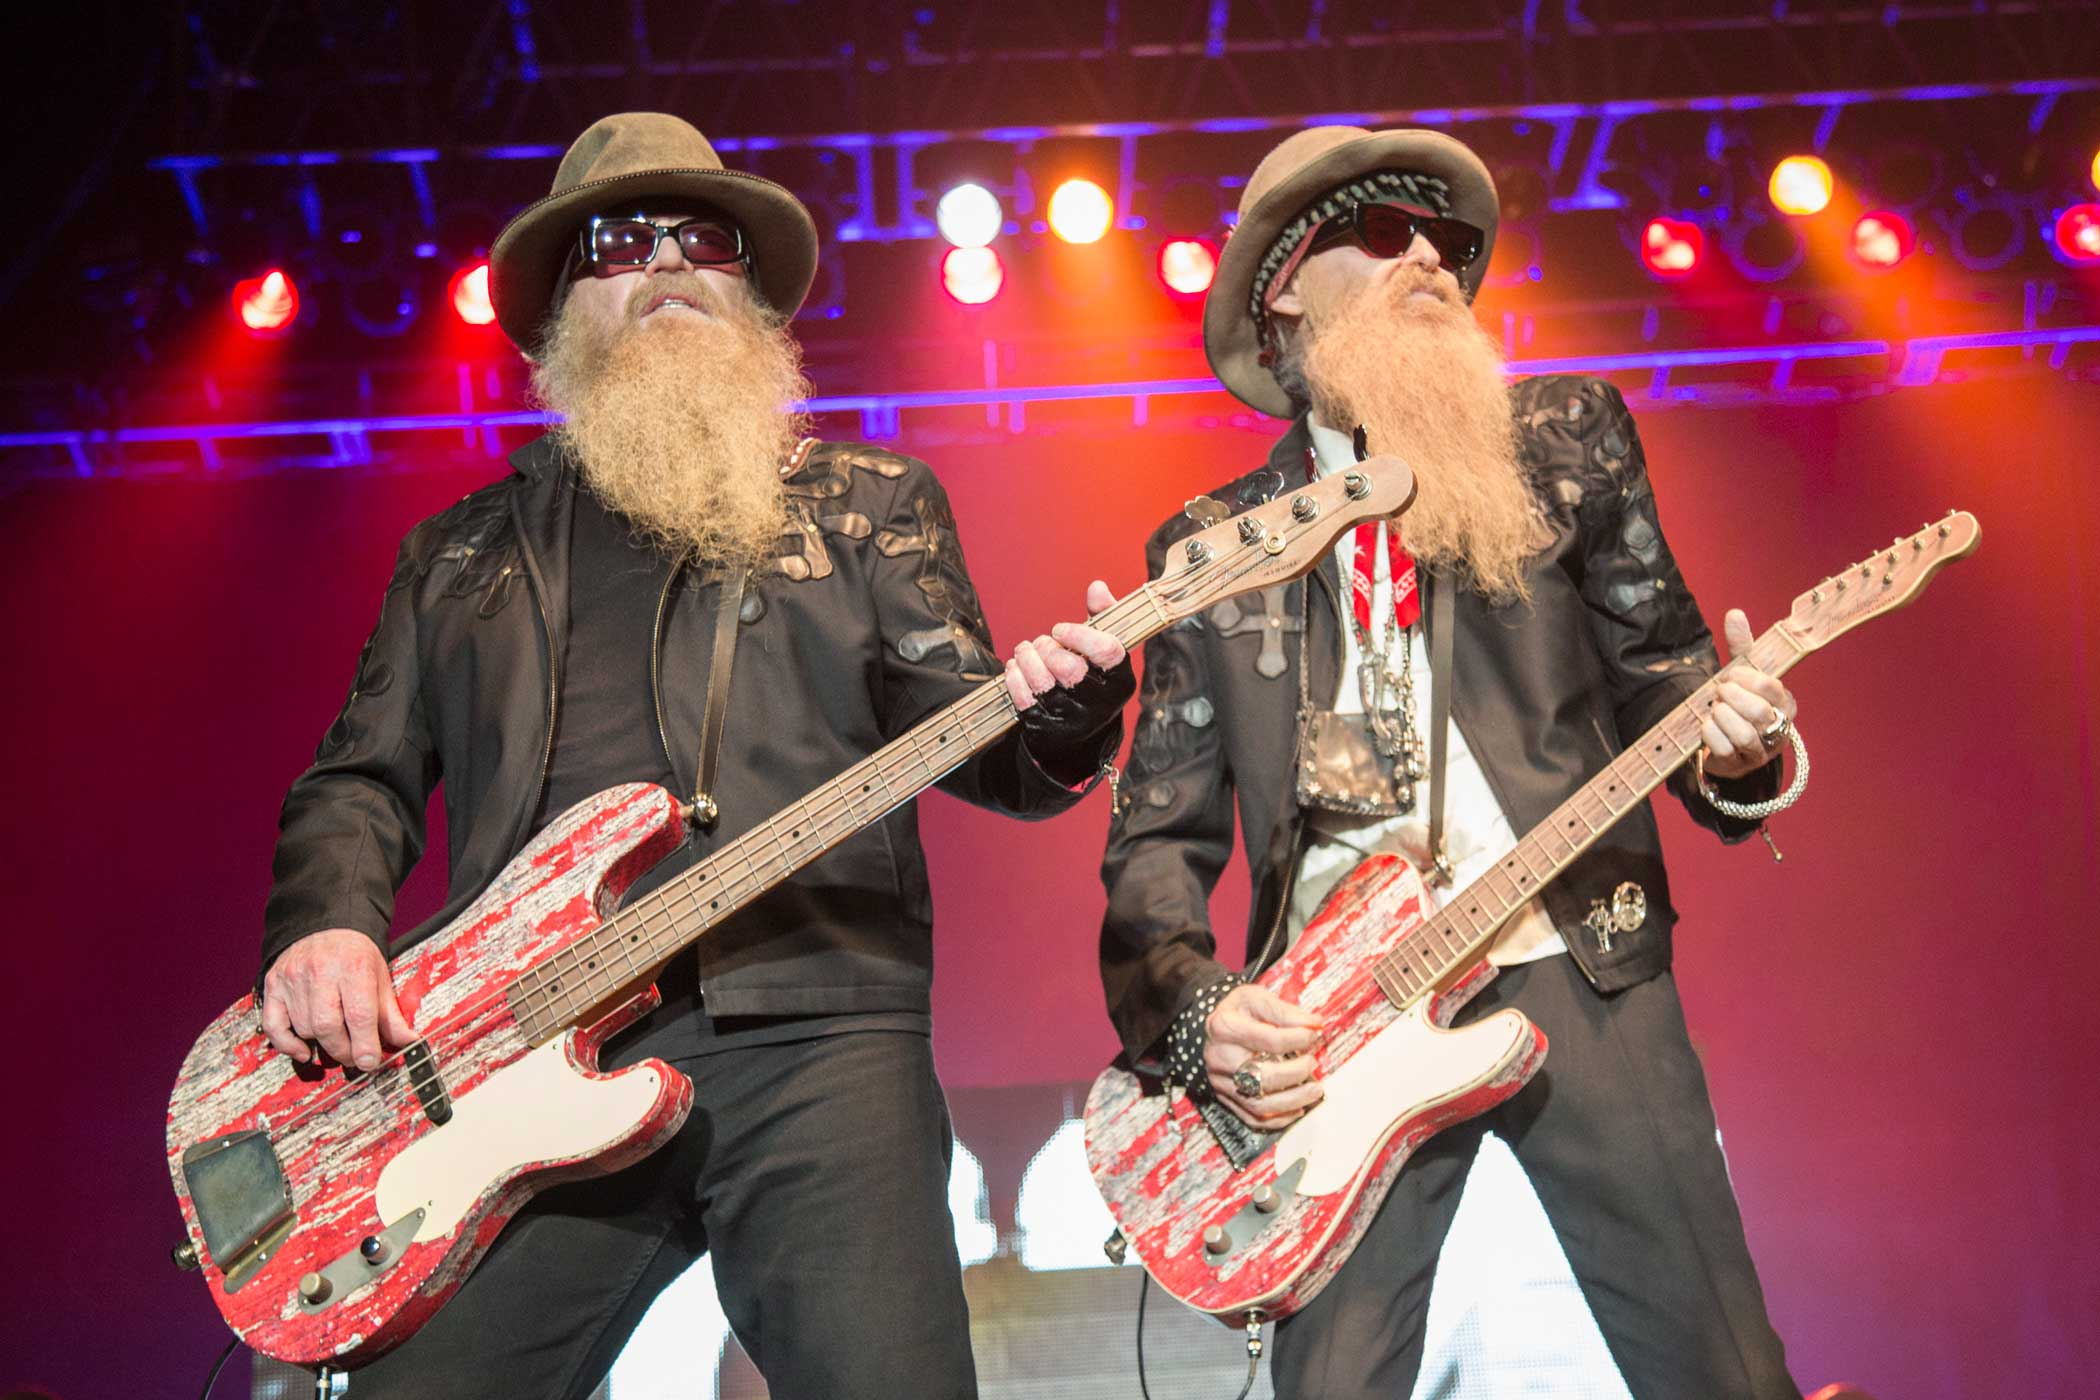 ZZ Top's Dusty Hill, left, and Billy Gibbons, right.